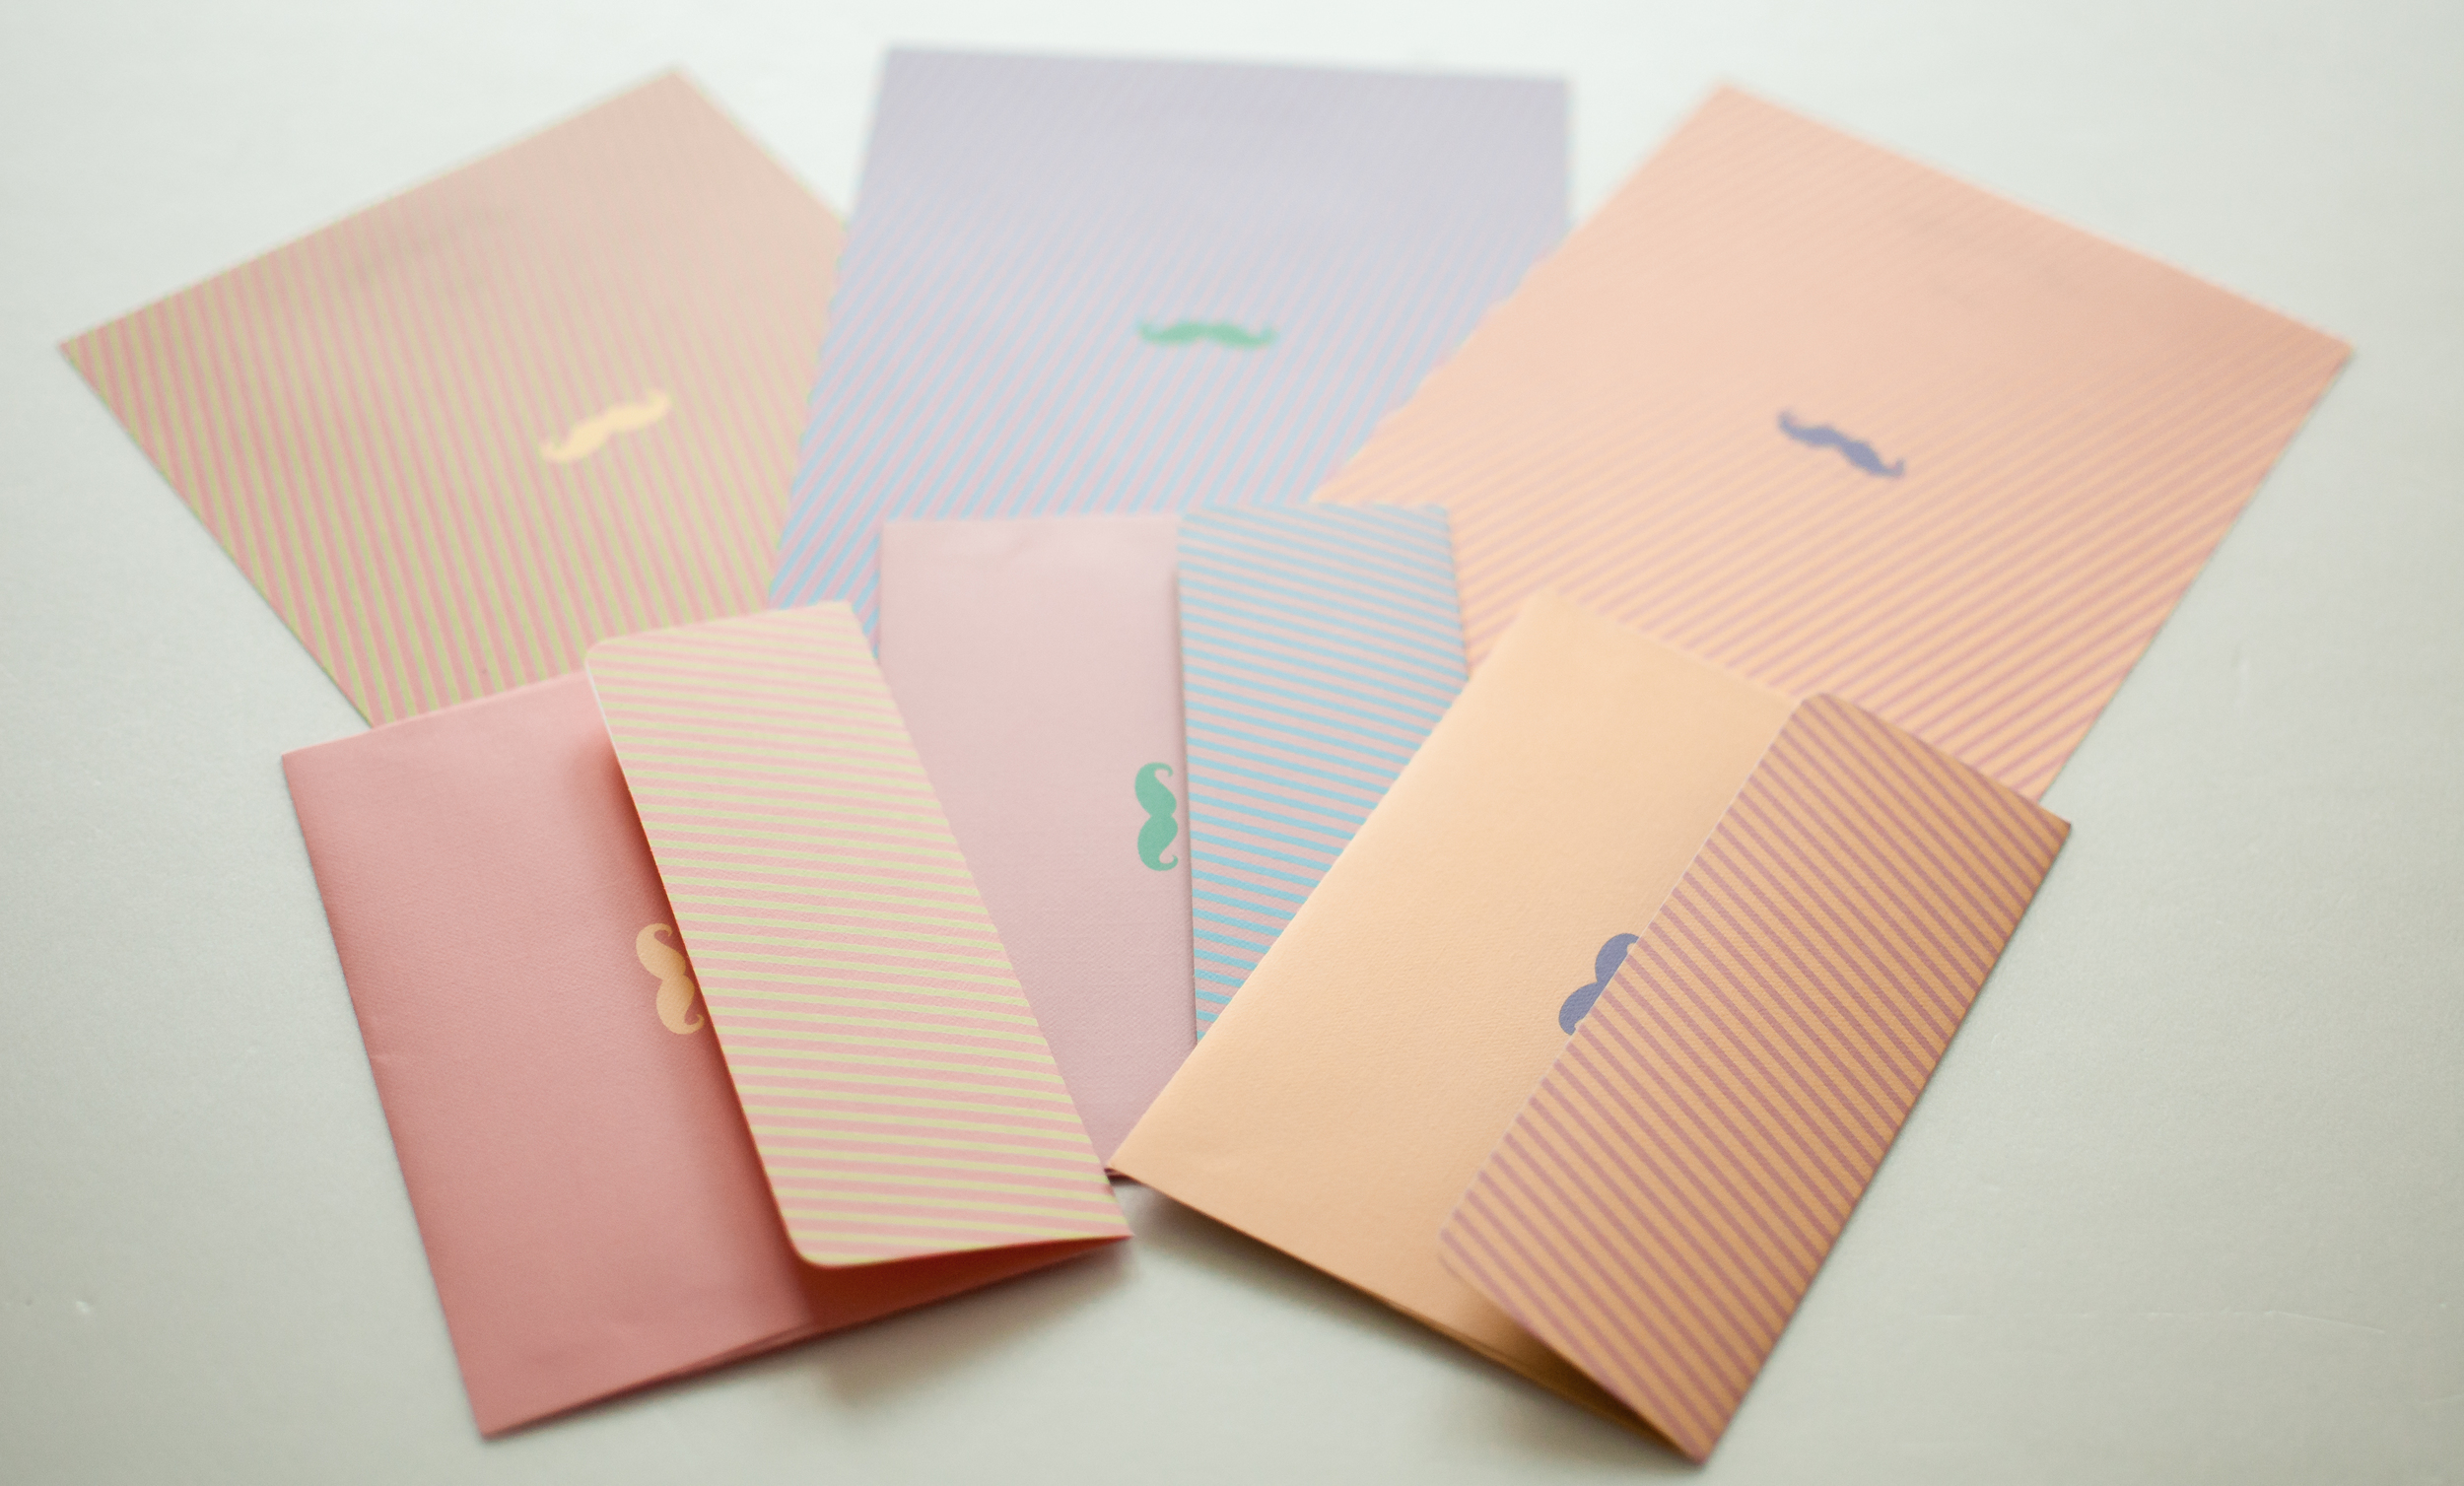 CityGirlSearchingStationeryStoreSouthKorea (37 of 39).jpg